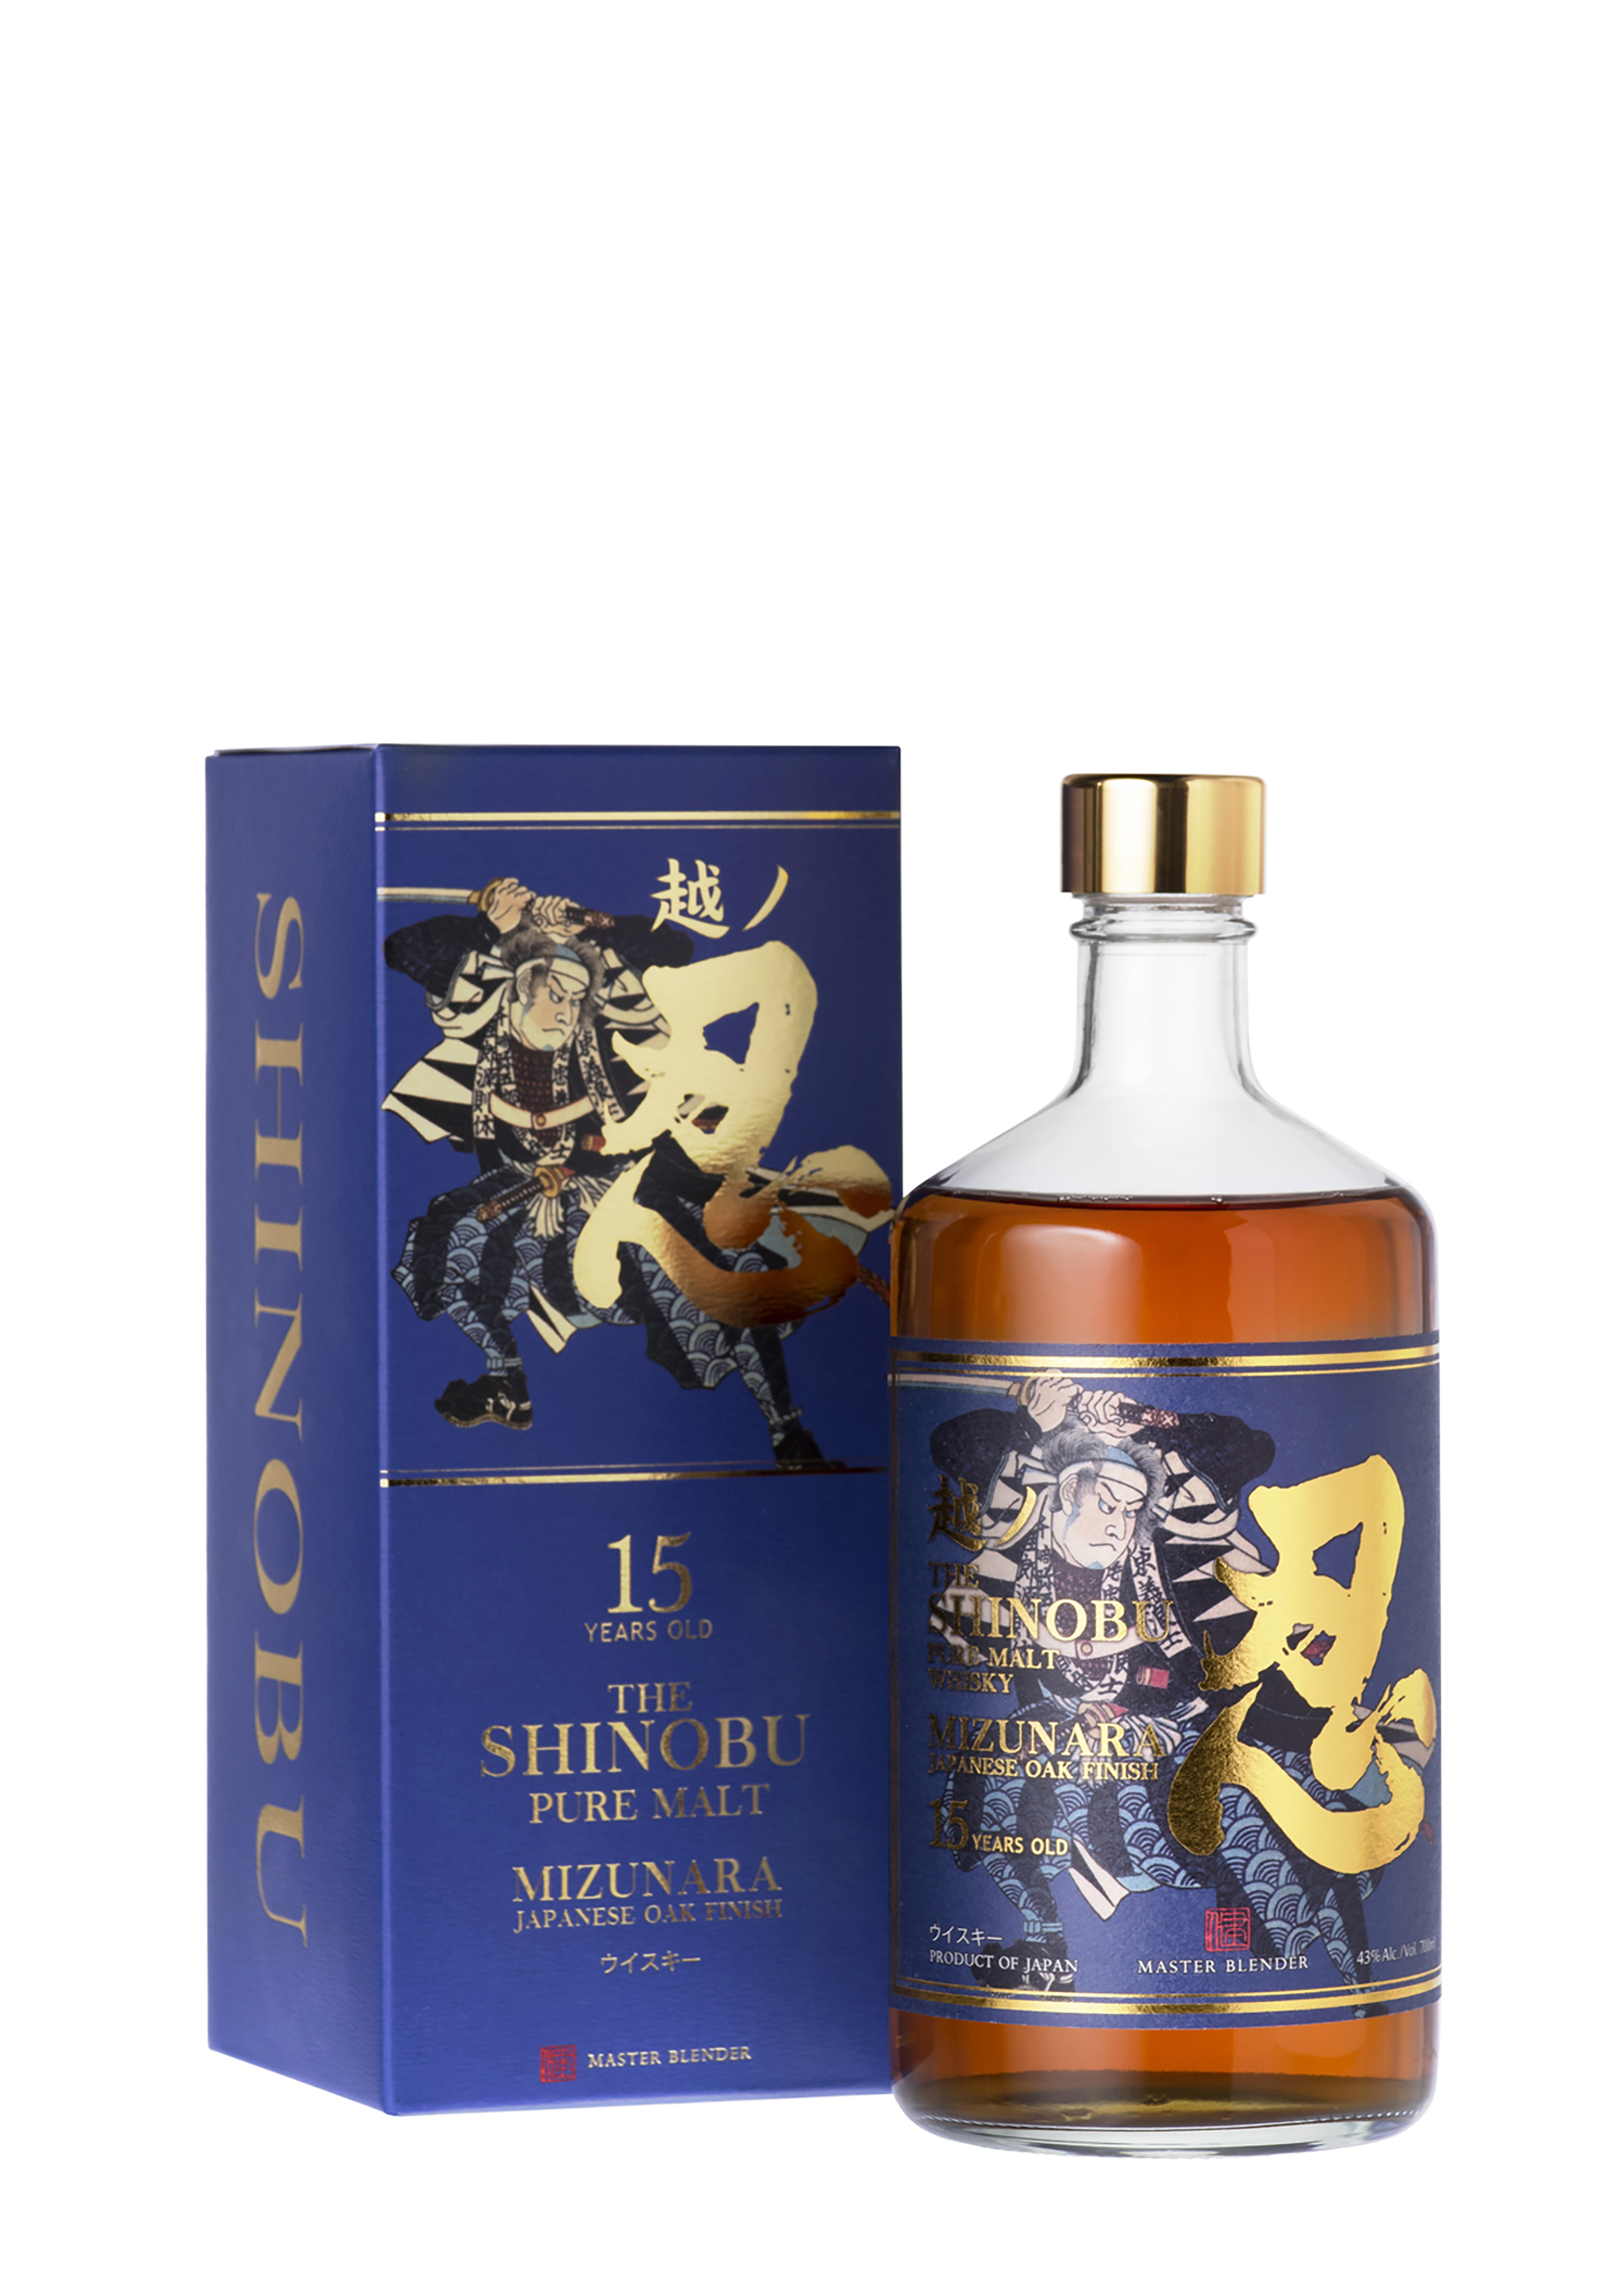 Shinobu 15 Years Old Pure Malt